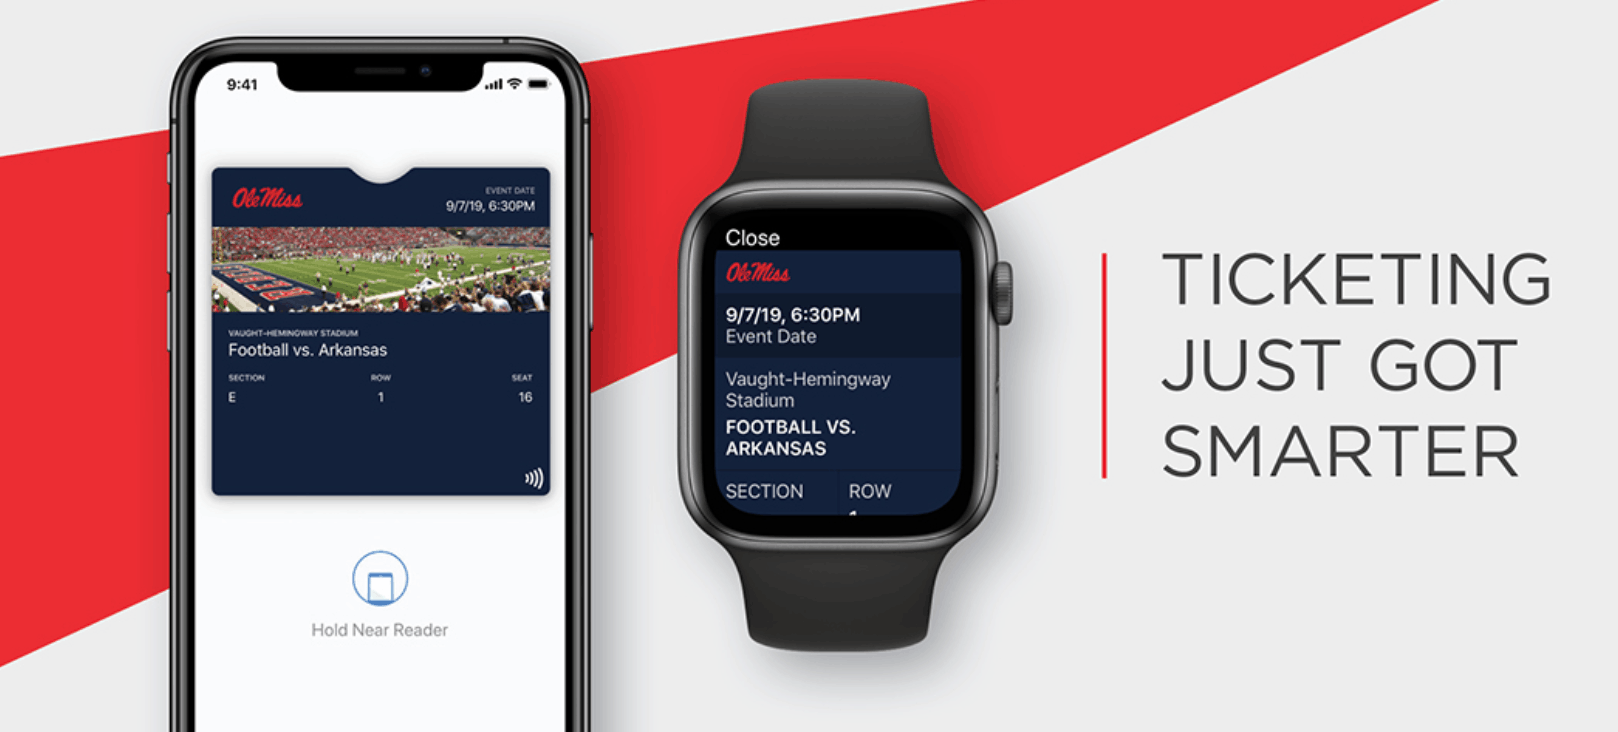 Contactless Ticket Purchases via Apple Wallet Coming To College Sports